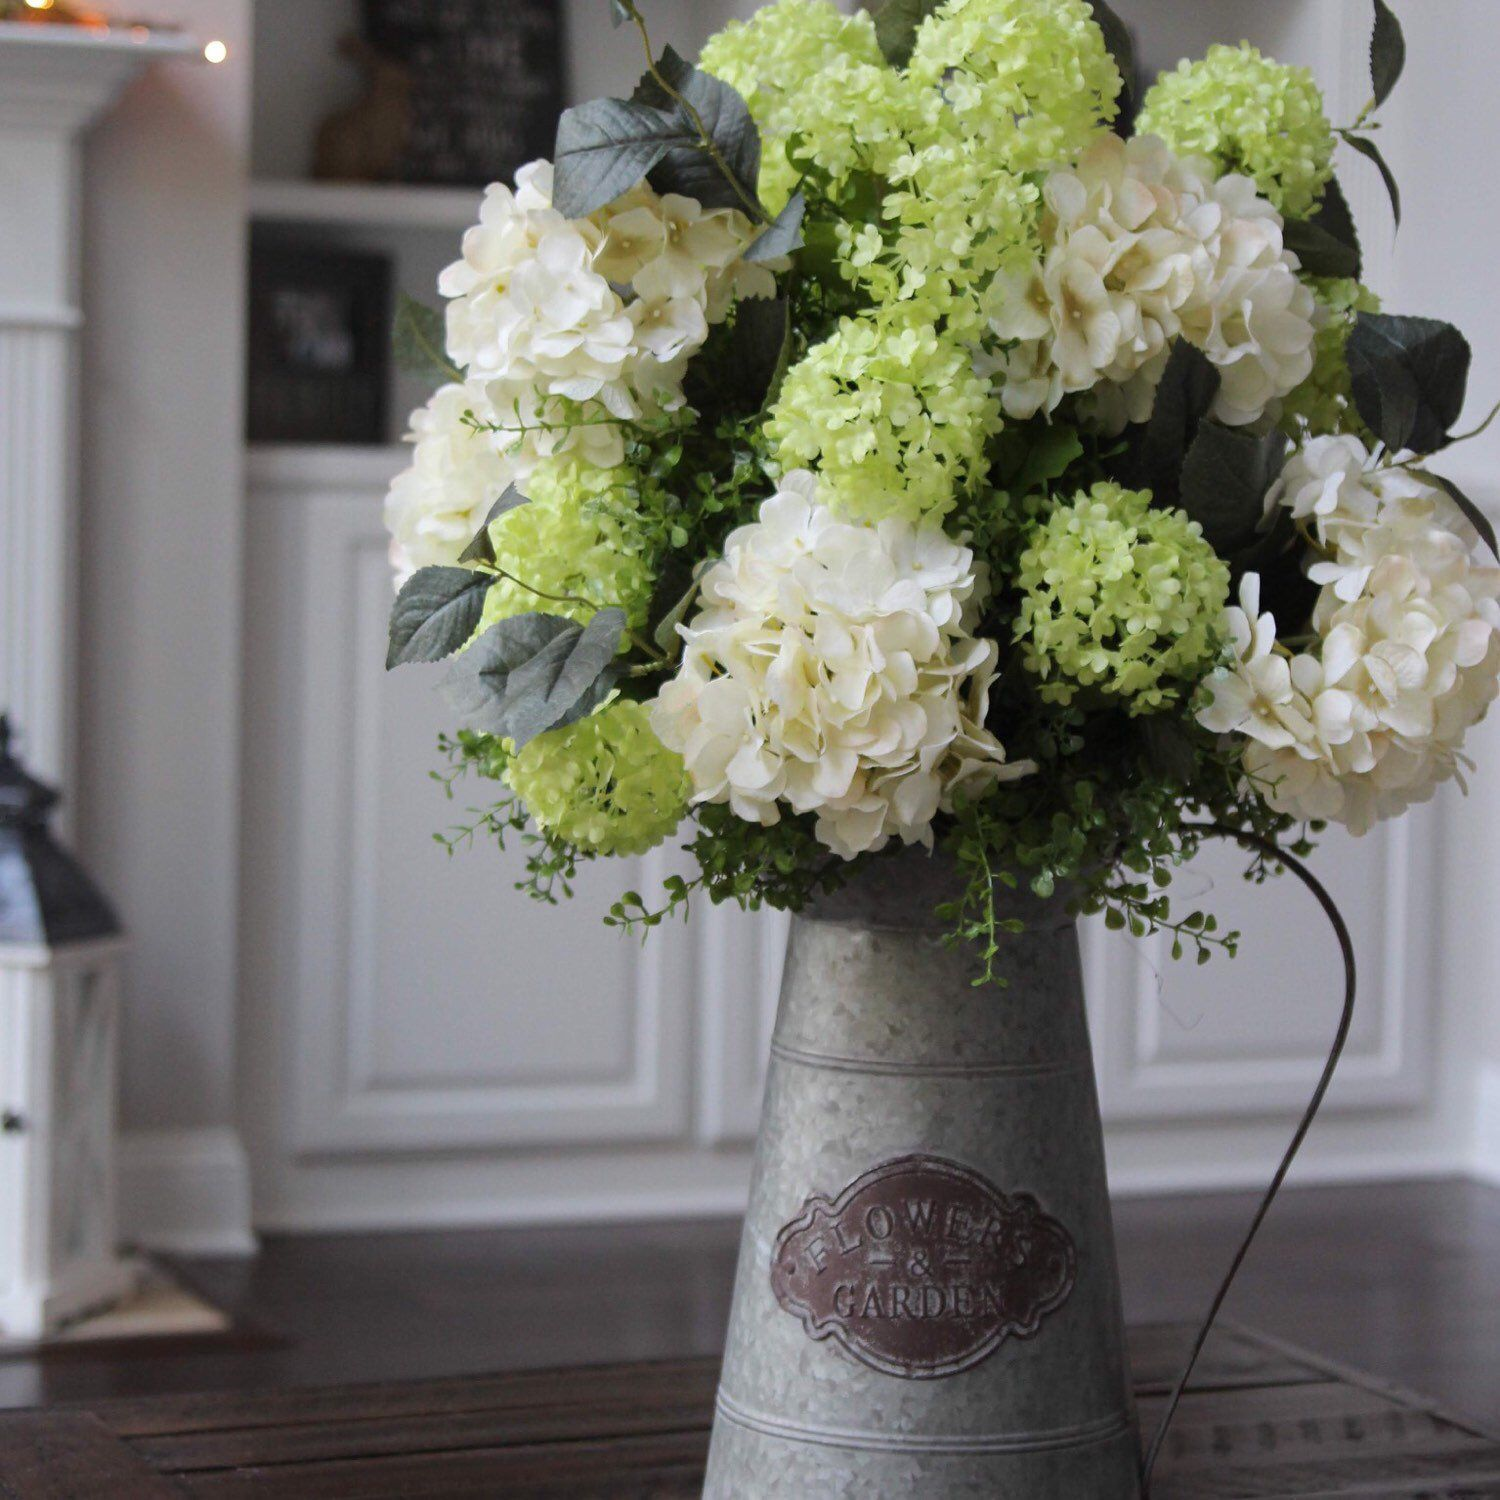 Green And Creamy White Hydrangeas In A Galvanized Pitcher With